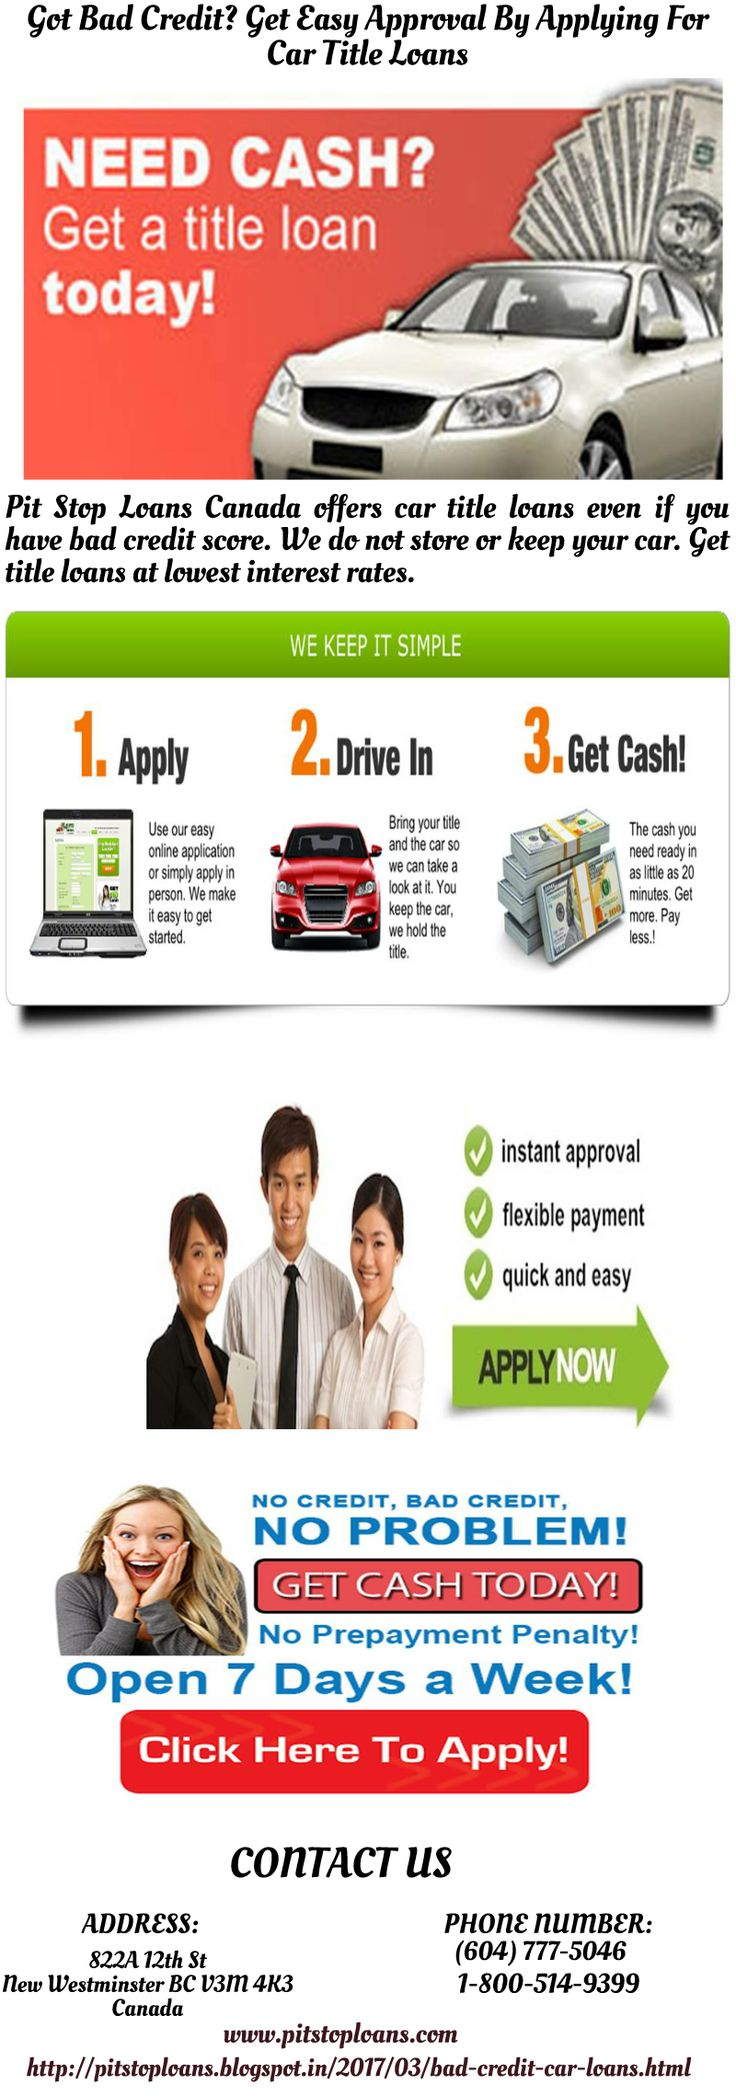 Got bad or poor credit no need to worry call pit stop loans canada and get approved for car title loans at lowest interest rates with no prepayment